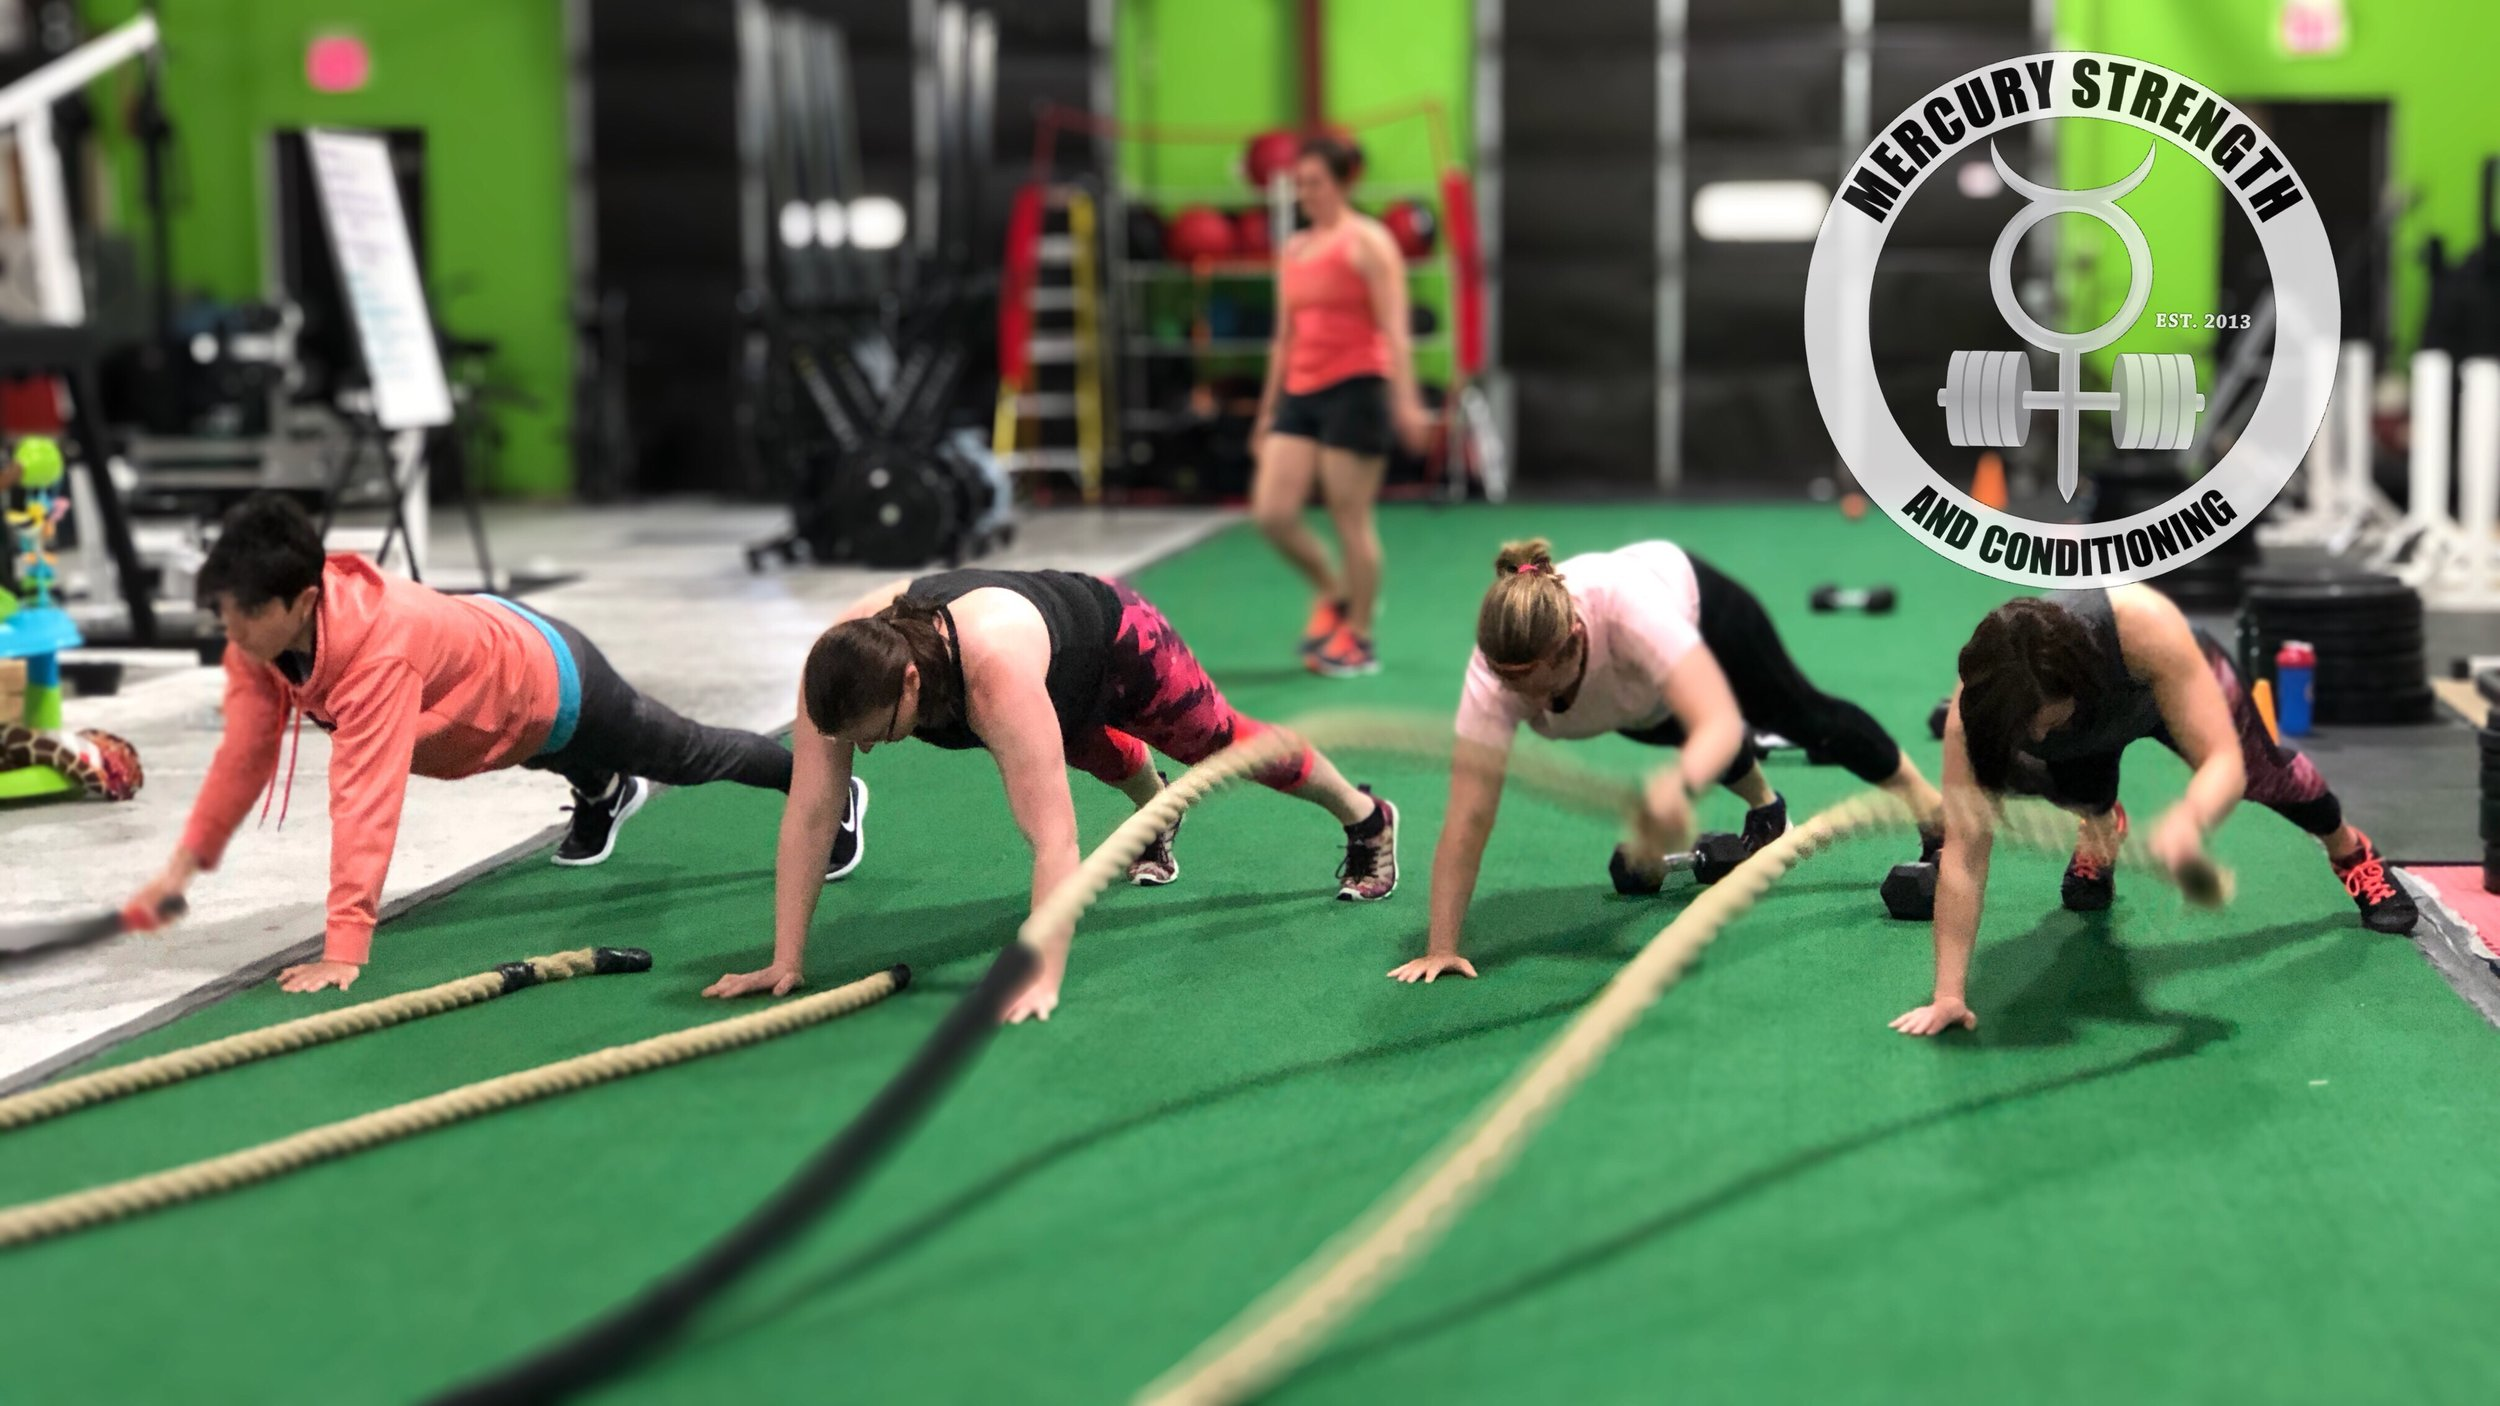 Some battle rope plank action